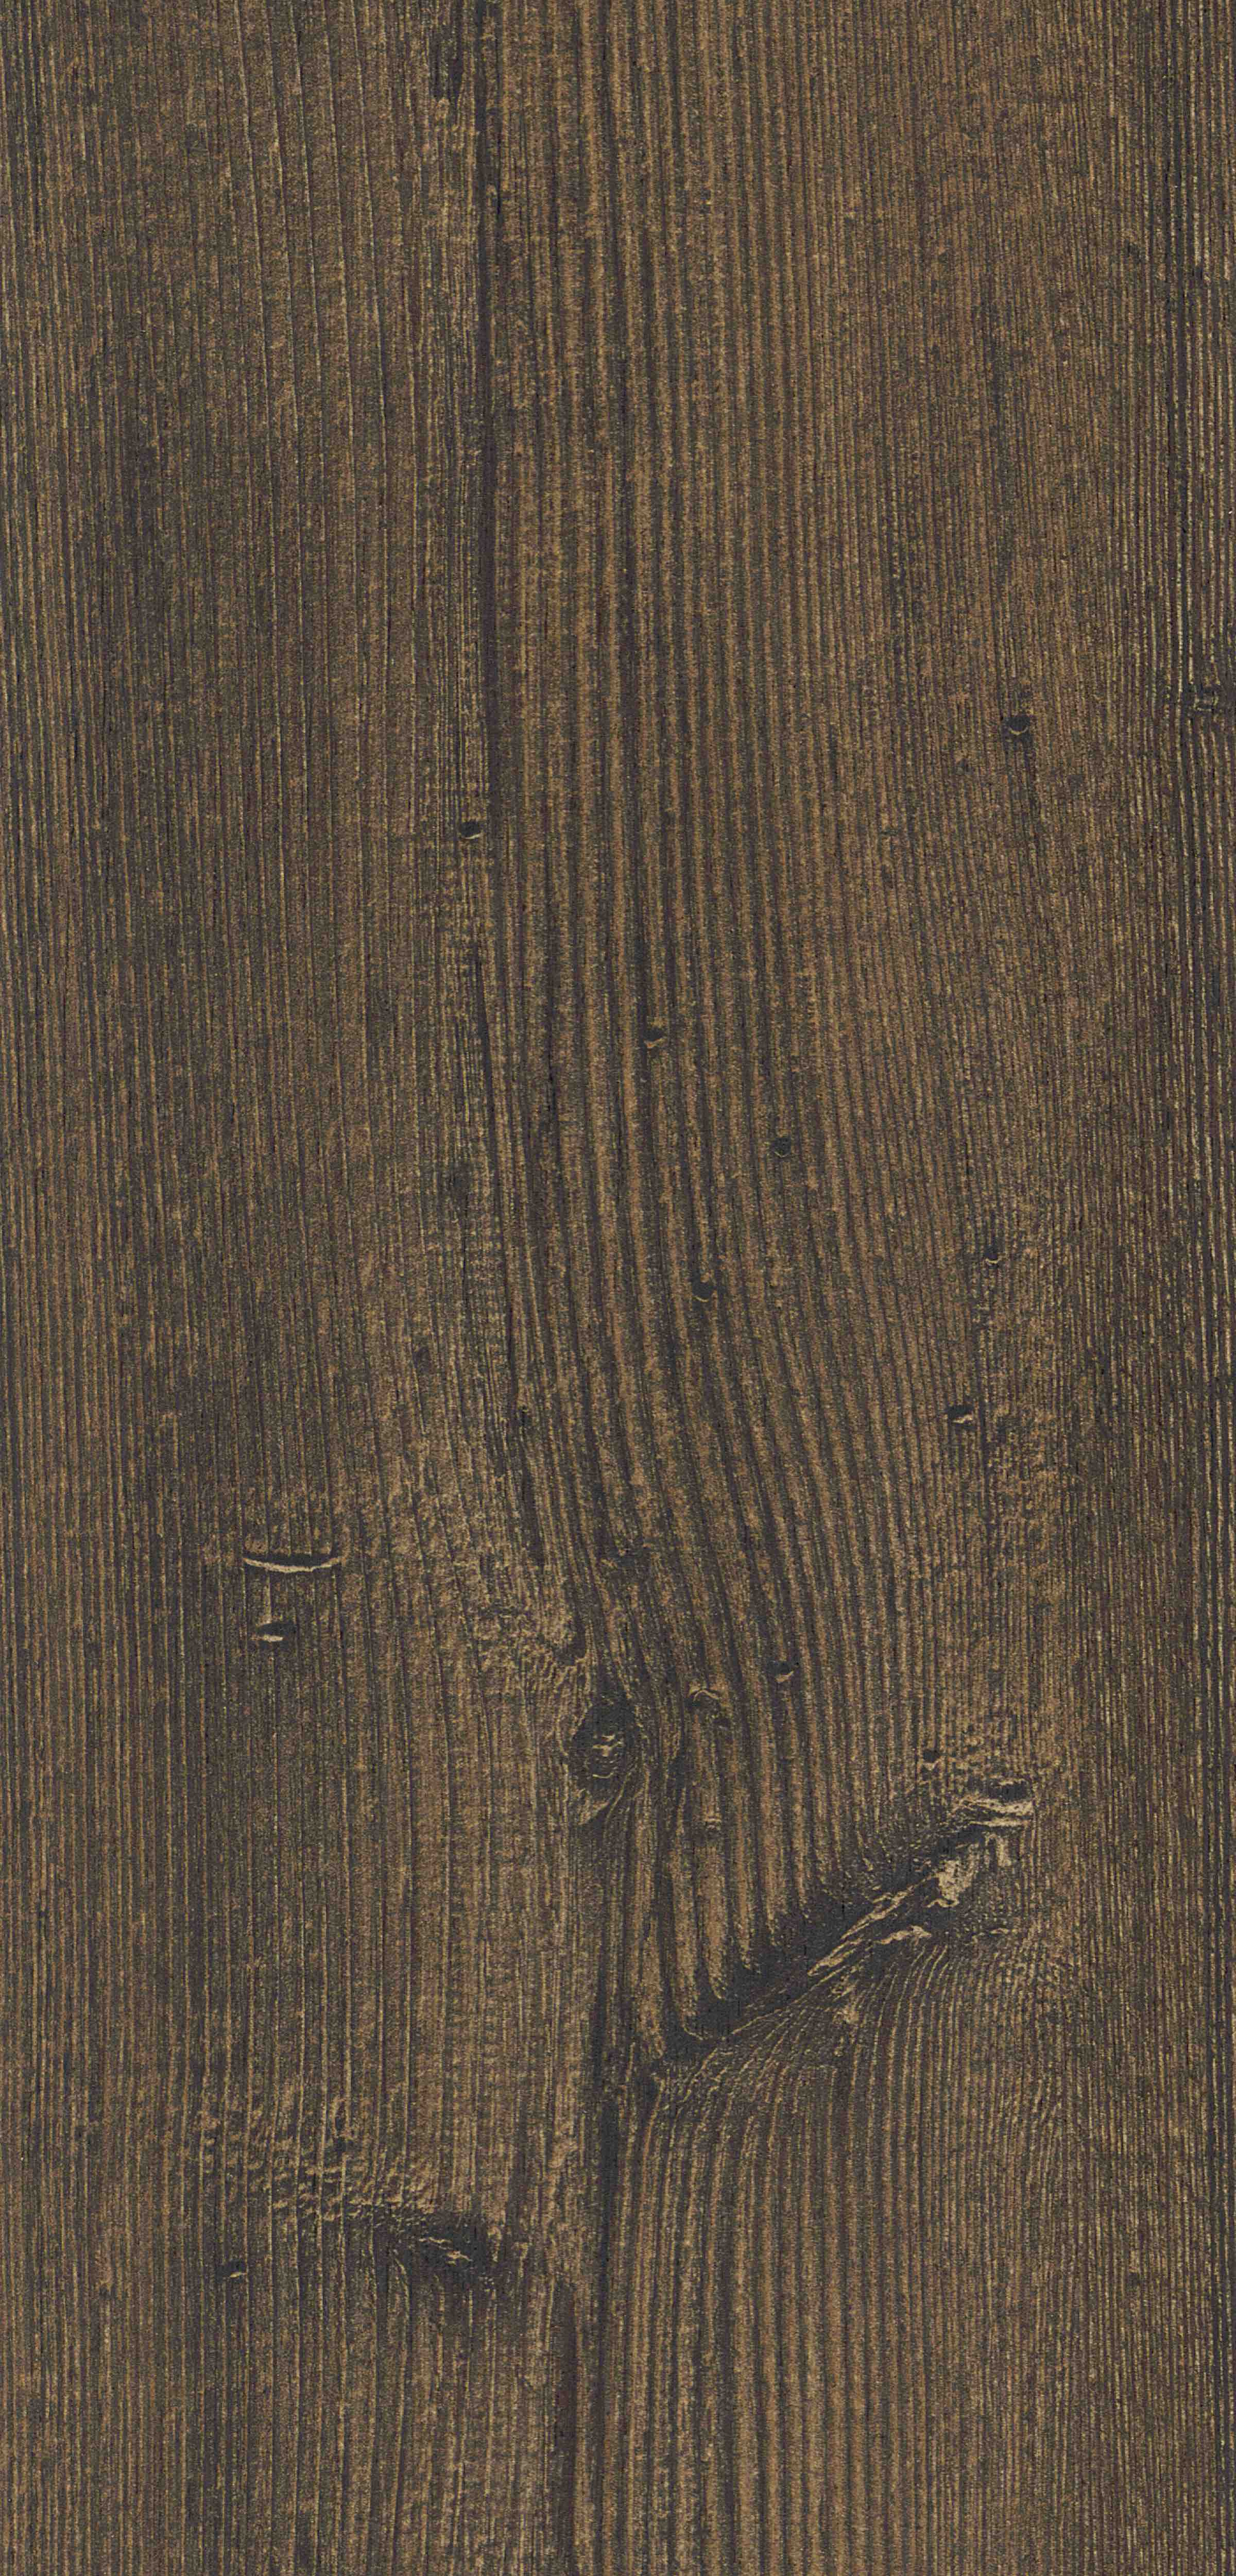 Rappórt | Burnt Sienna Wood, 2893 | Paragon Carpet Tiles | Commercial Carpet Tiles